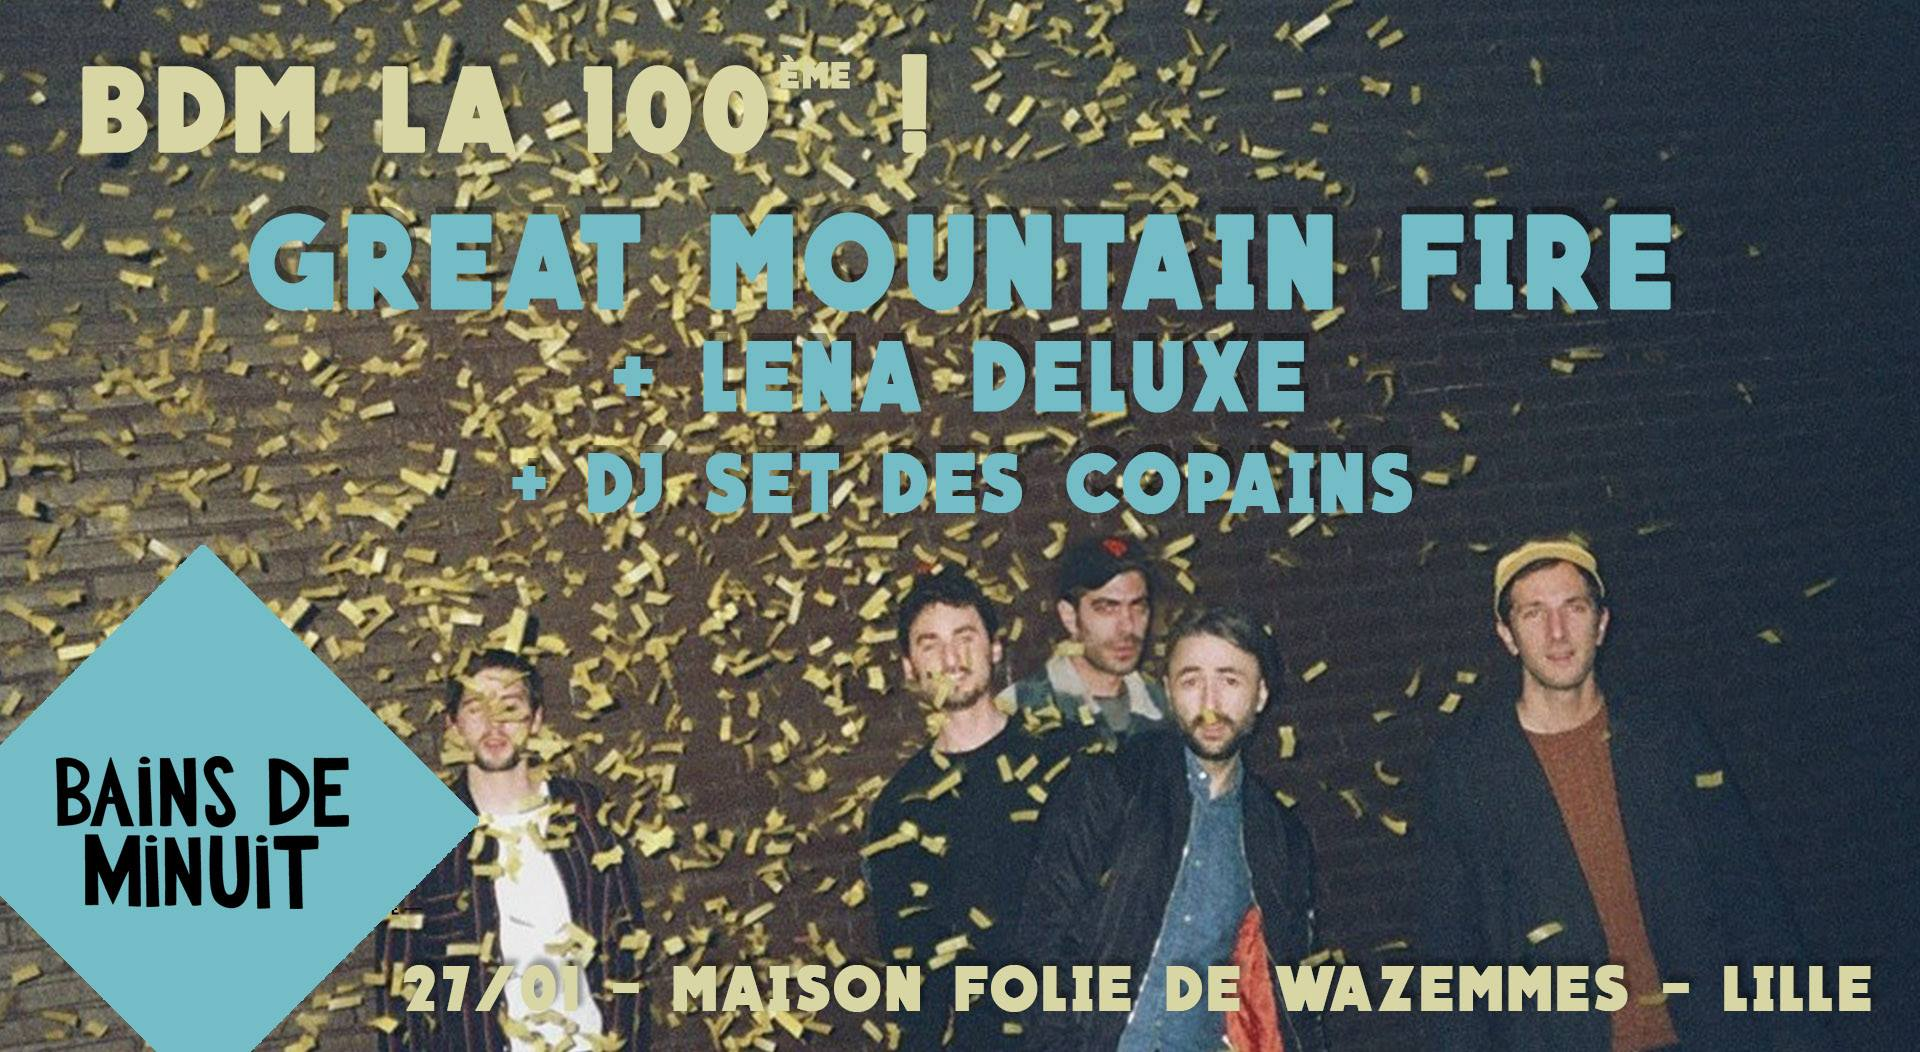 BDM La 100ème ! Great Moutain Fire + Lena Deluxe + DJ Sets